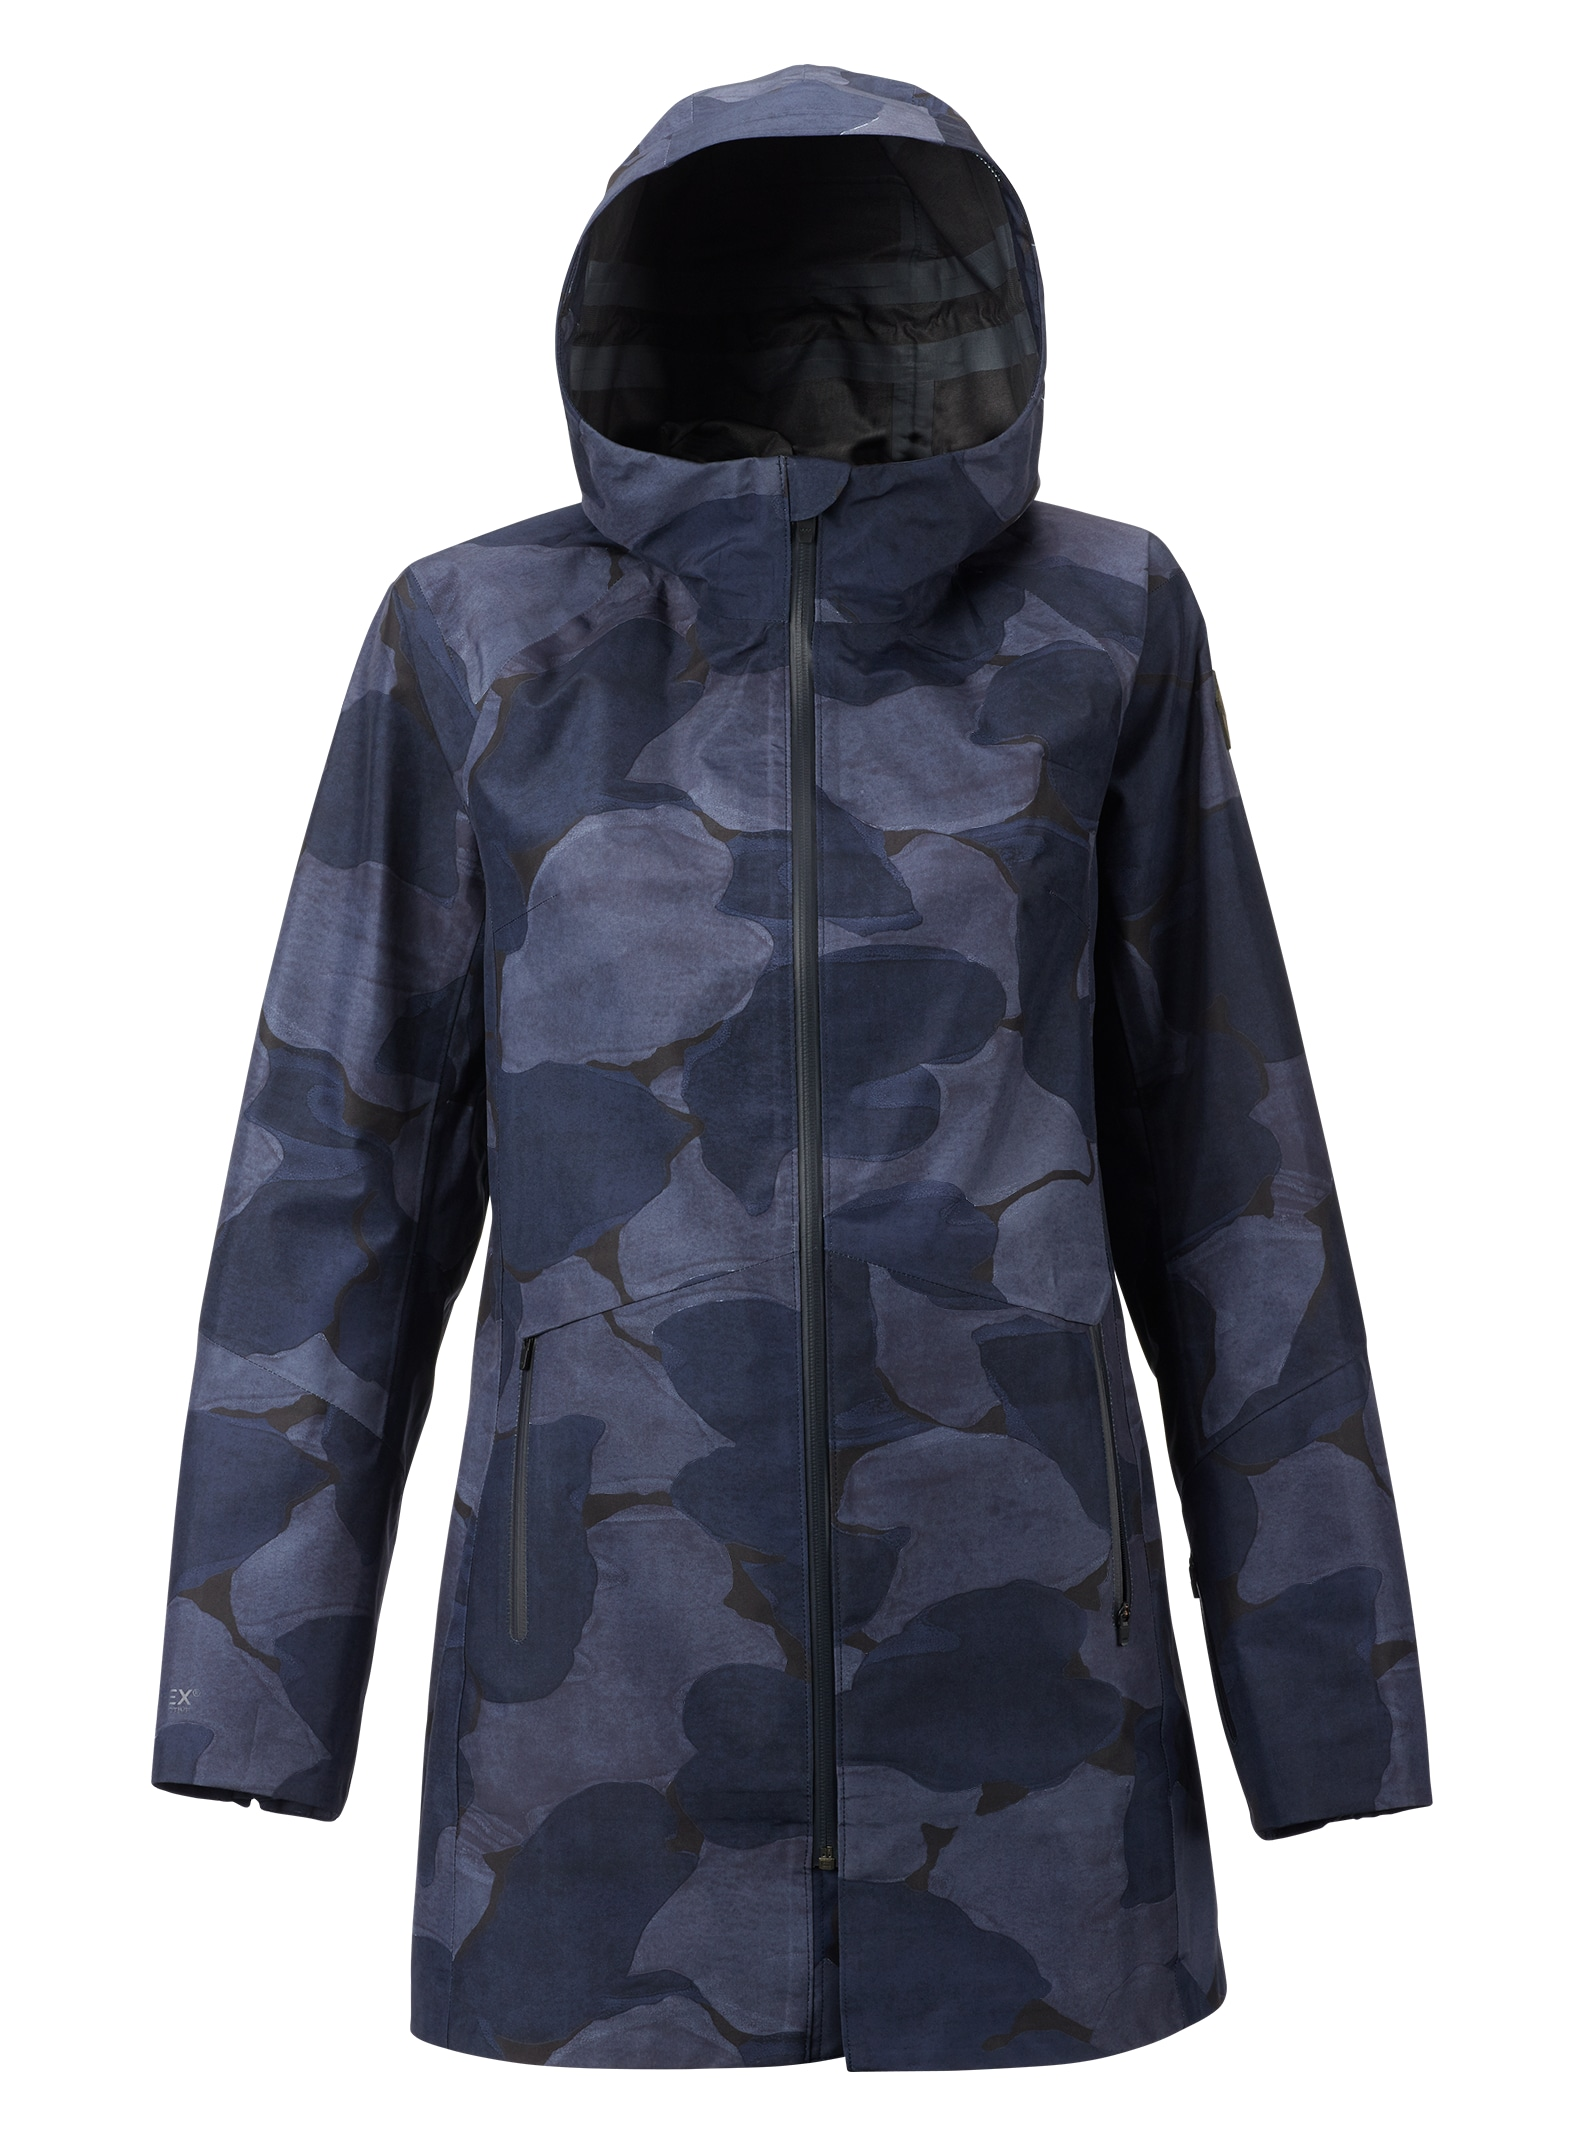 Burton - Parka imperméable Cady en GORE-TEX® 3L affichage en Mood Indigo Pond Camo